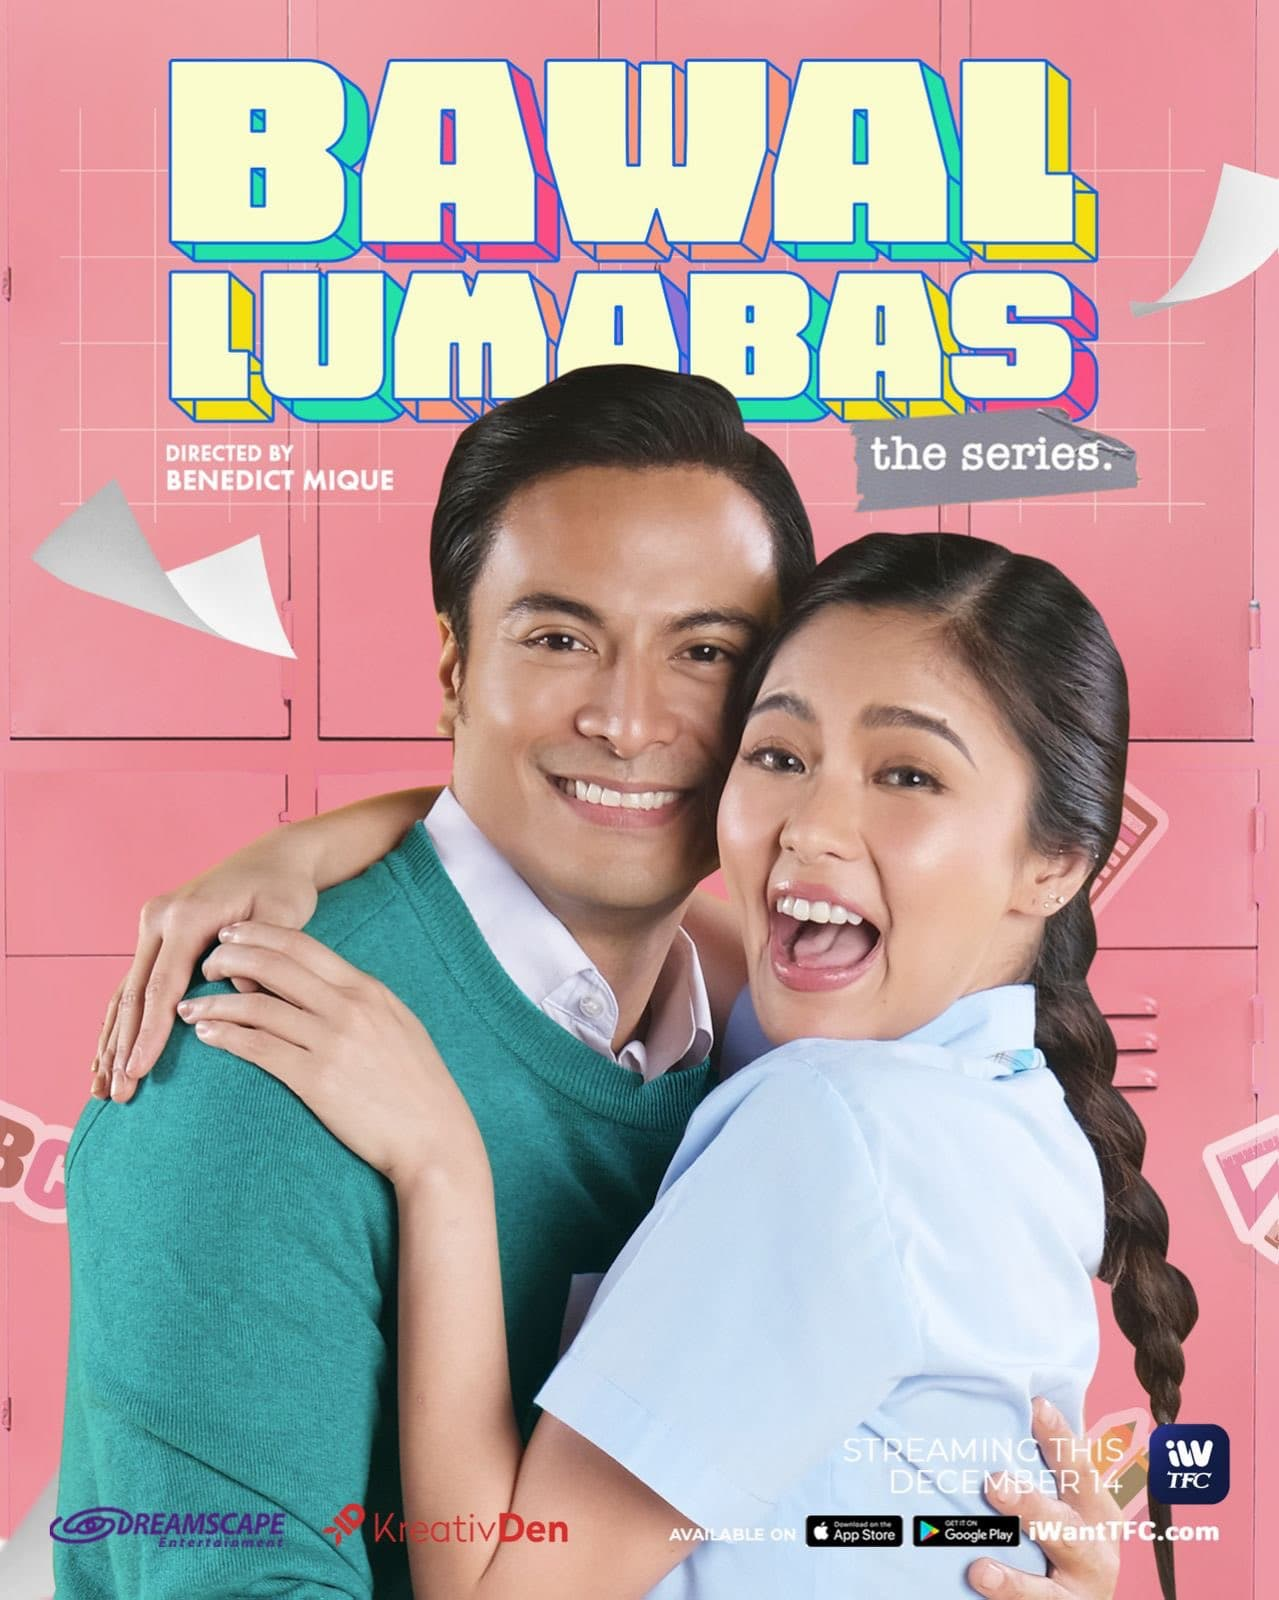 Rafael and Kim Bawal Lumabas The Series poster